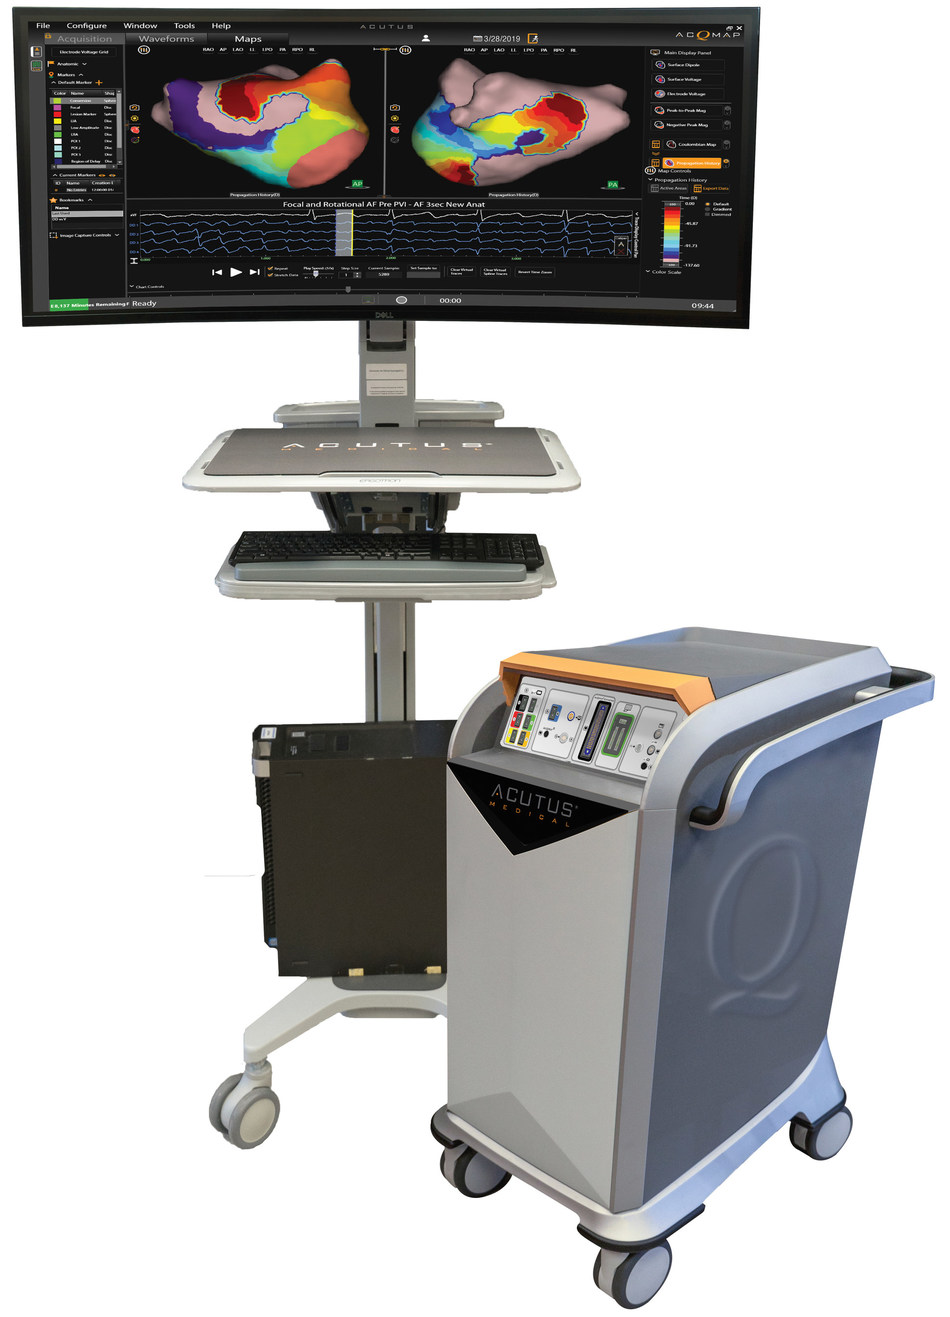 AcQMap enables physicians to uncover the electrical activation pattern of the heart with real-time visualization during electrophysiology procedures.